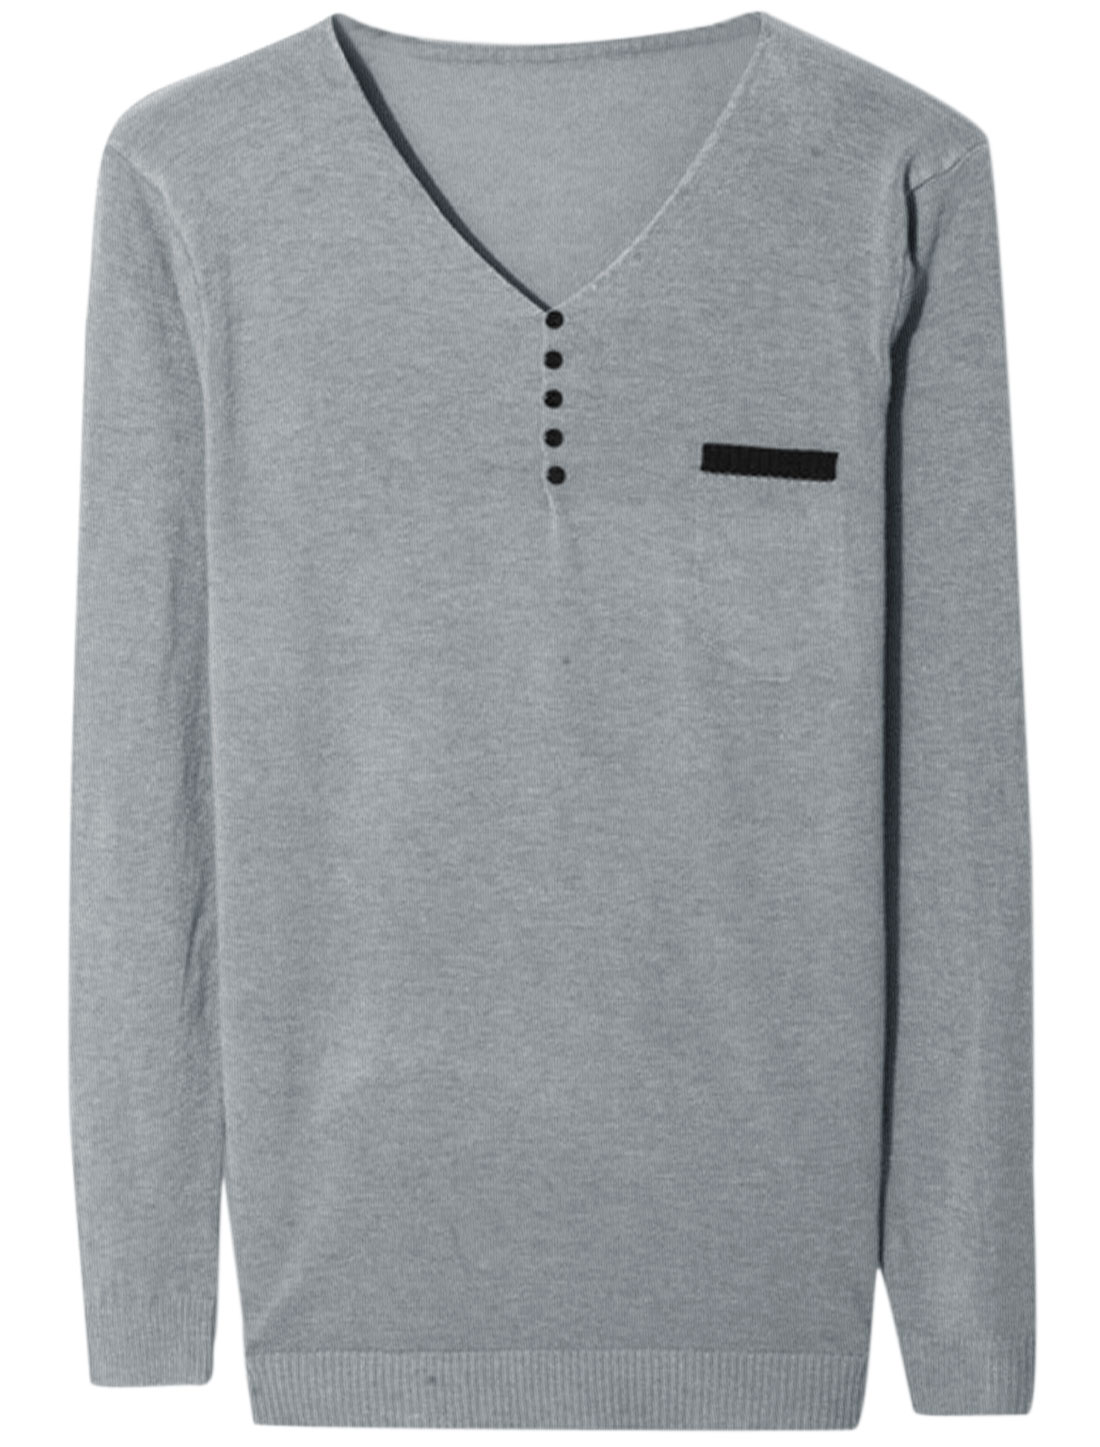 Men V Neck Long Sleeve Buttons Decor Leisure Knit Shirt Gray M